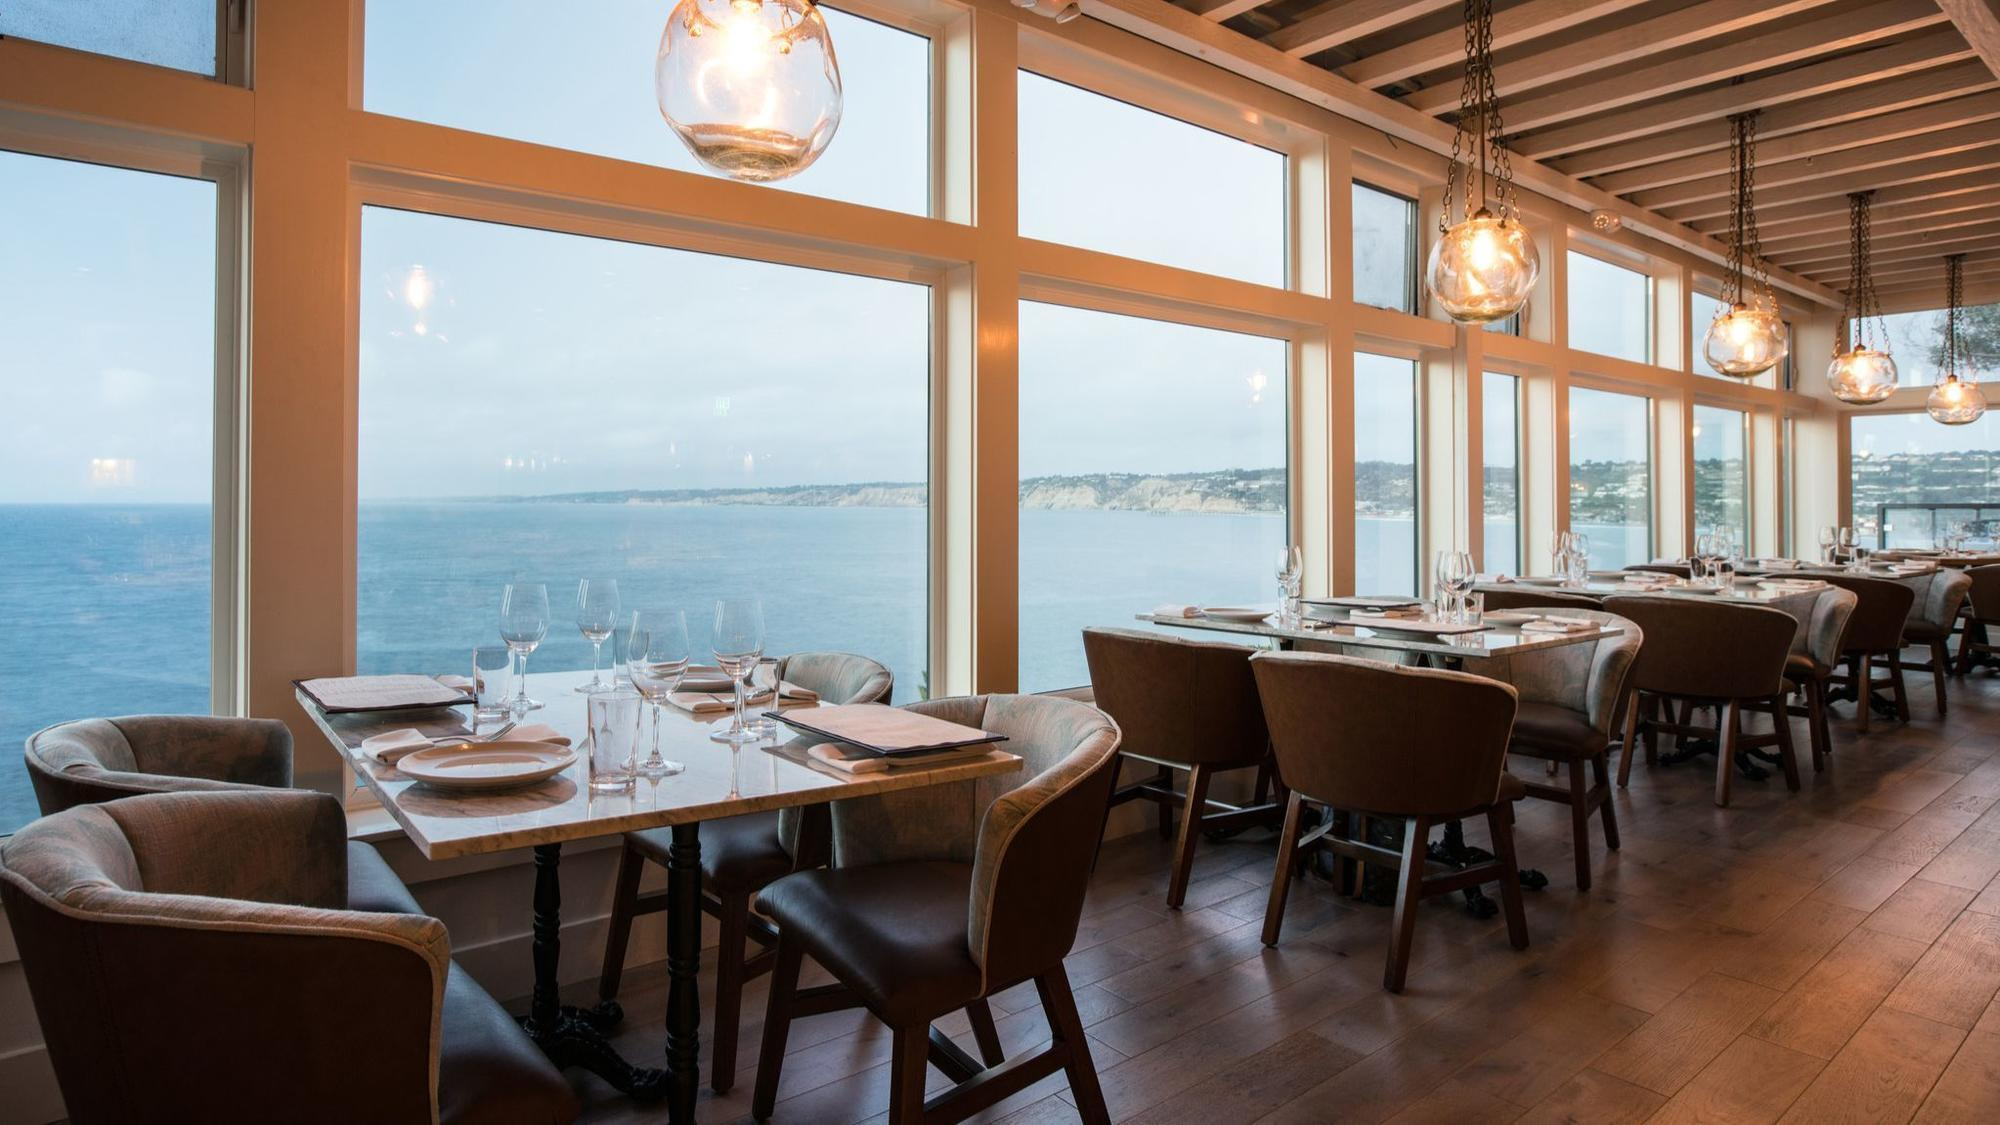 Ocean View La Jolla Restaurant Closes Despite 2 5m Remodel The San Go Union Tribune